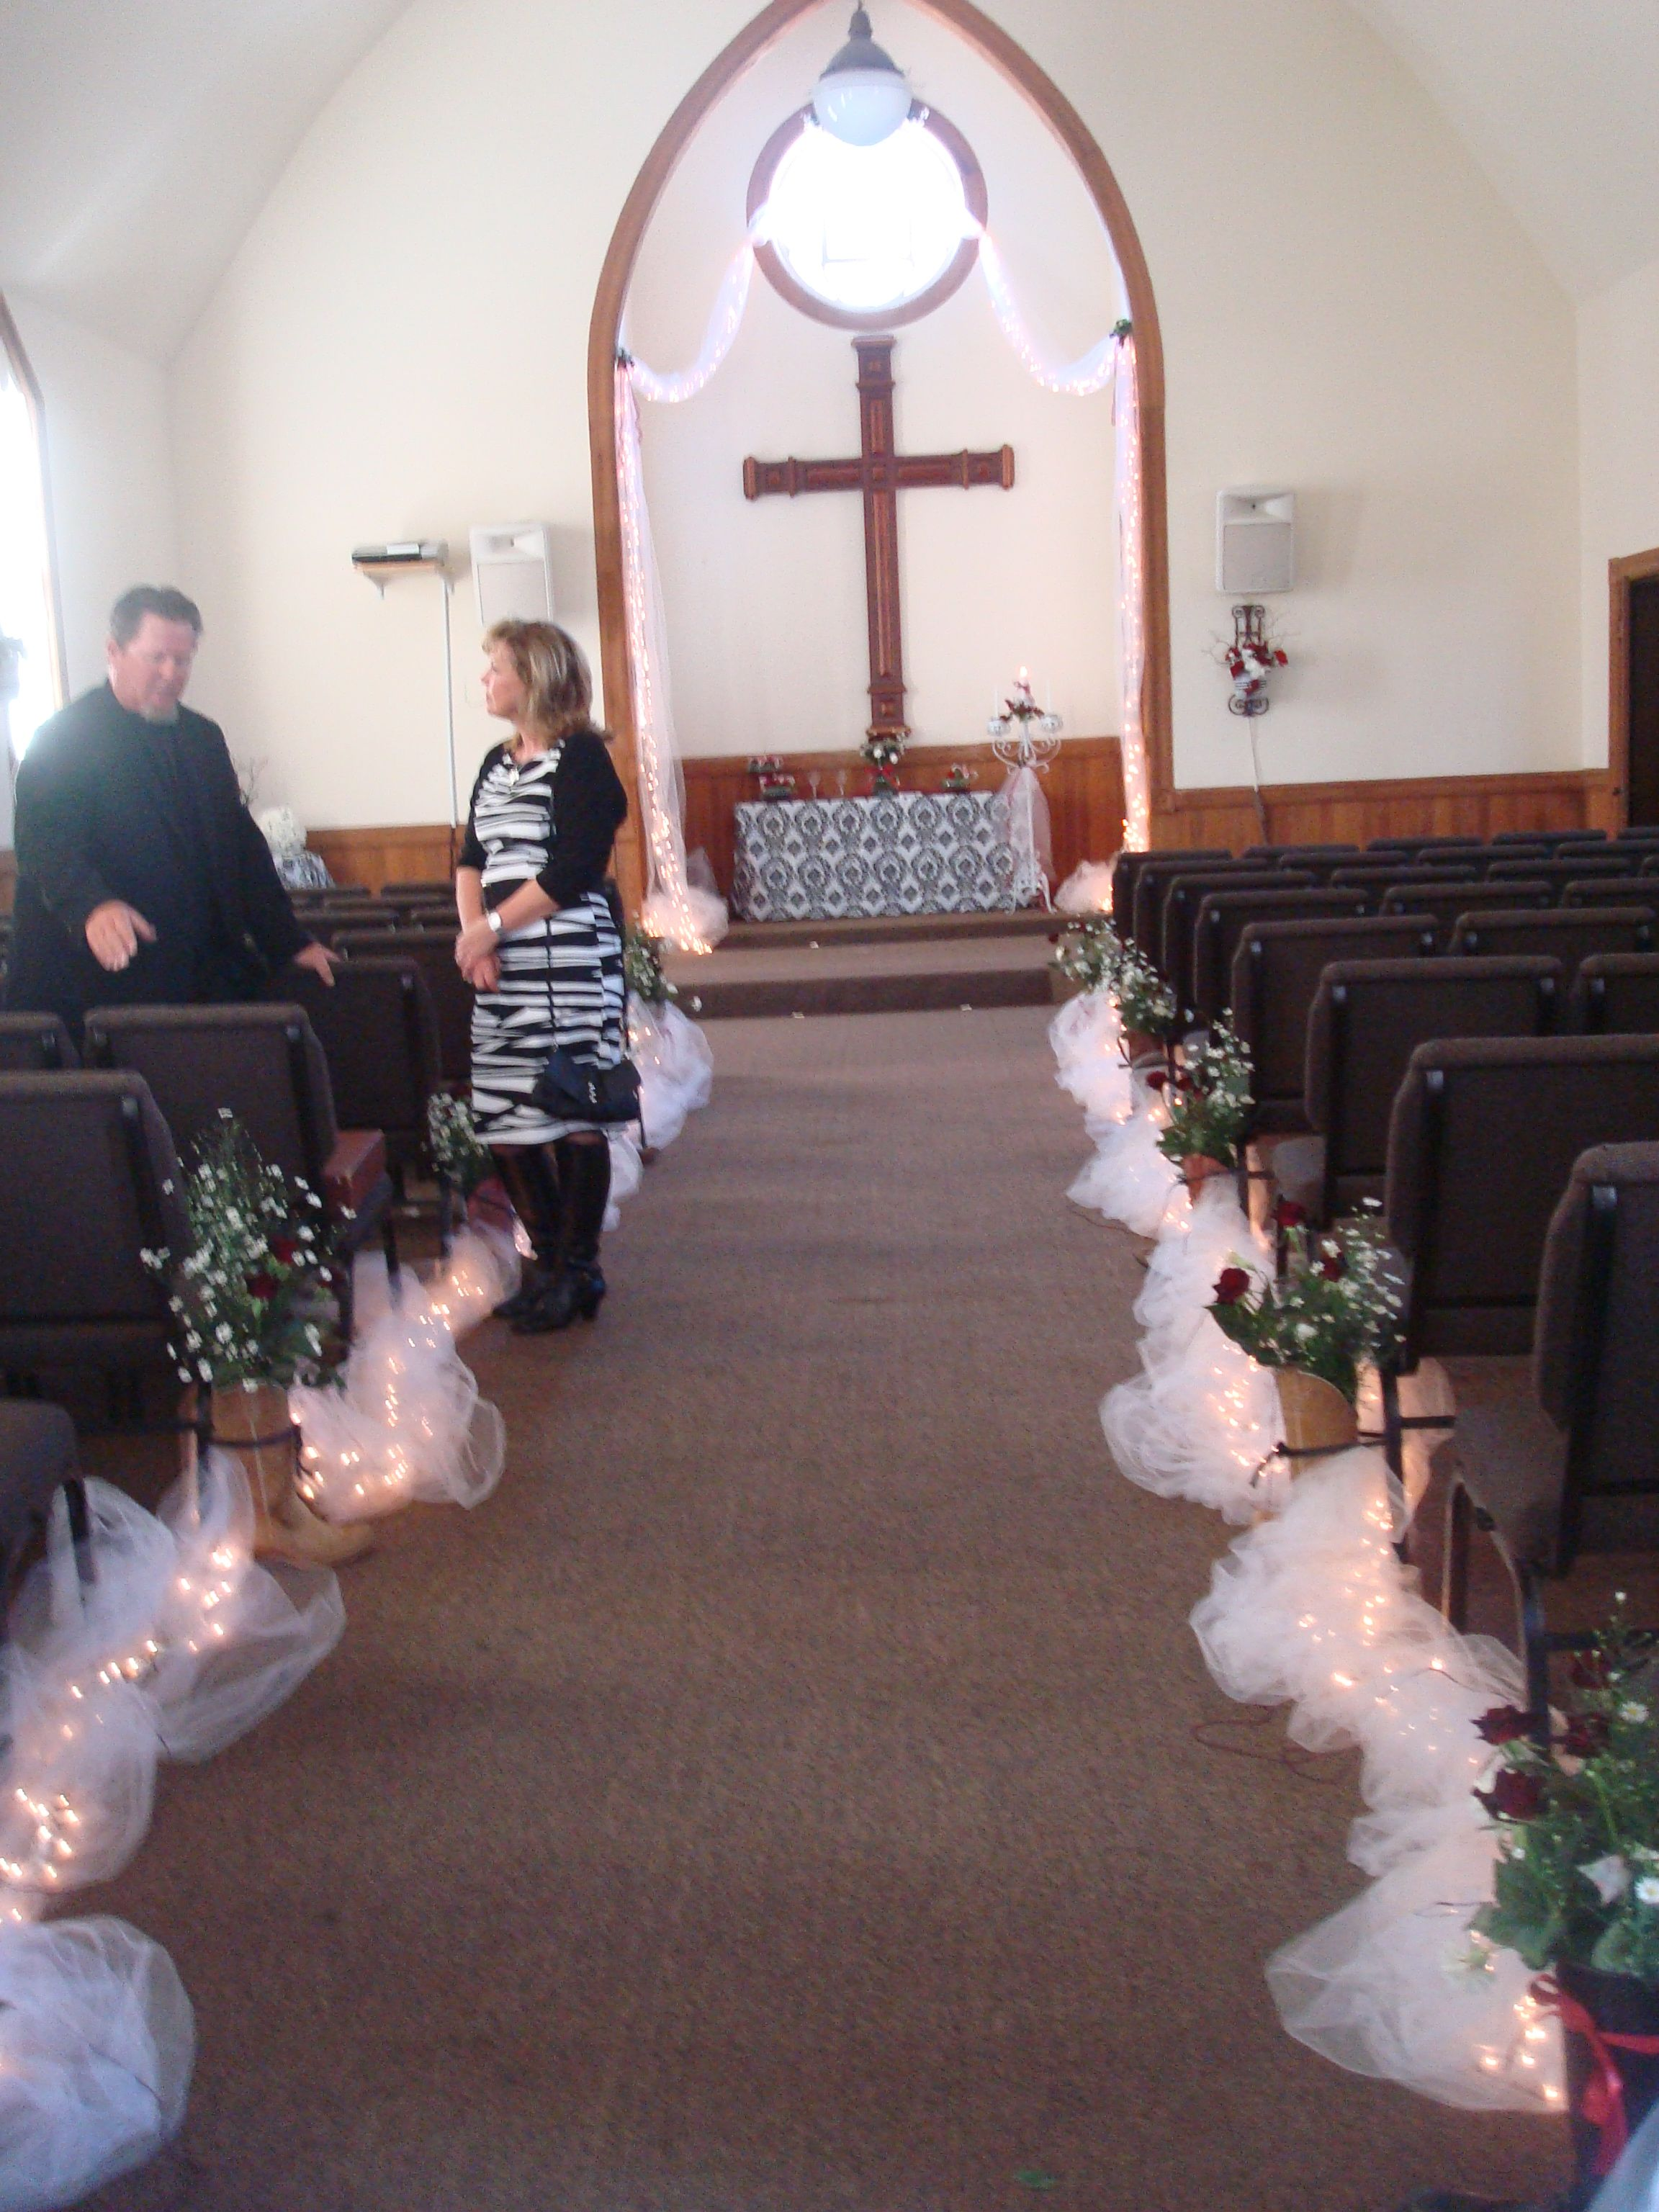 Wedding decorations tulle and lights  Boots with flowers and tulle lighting down the aisle was a kick at